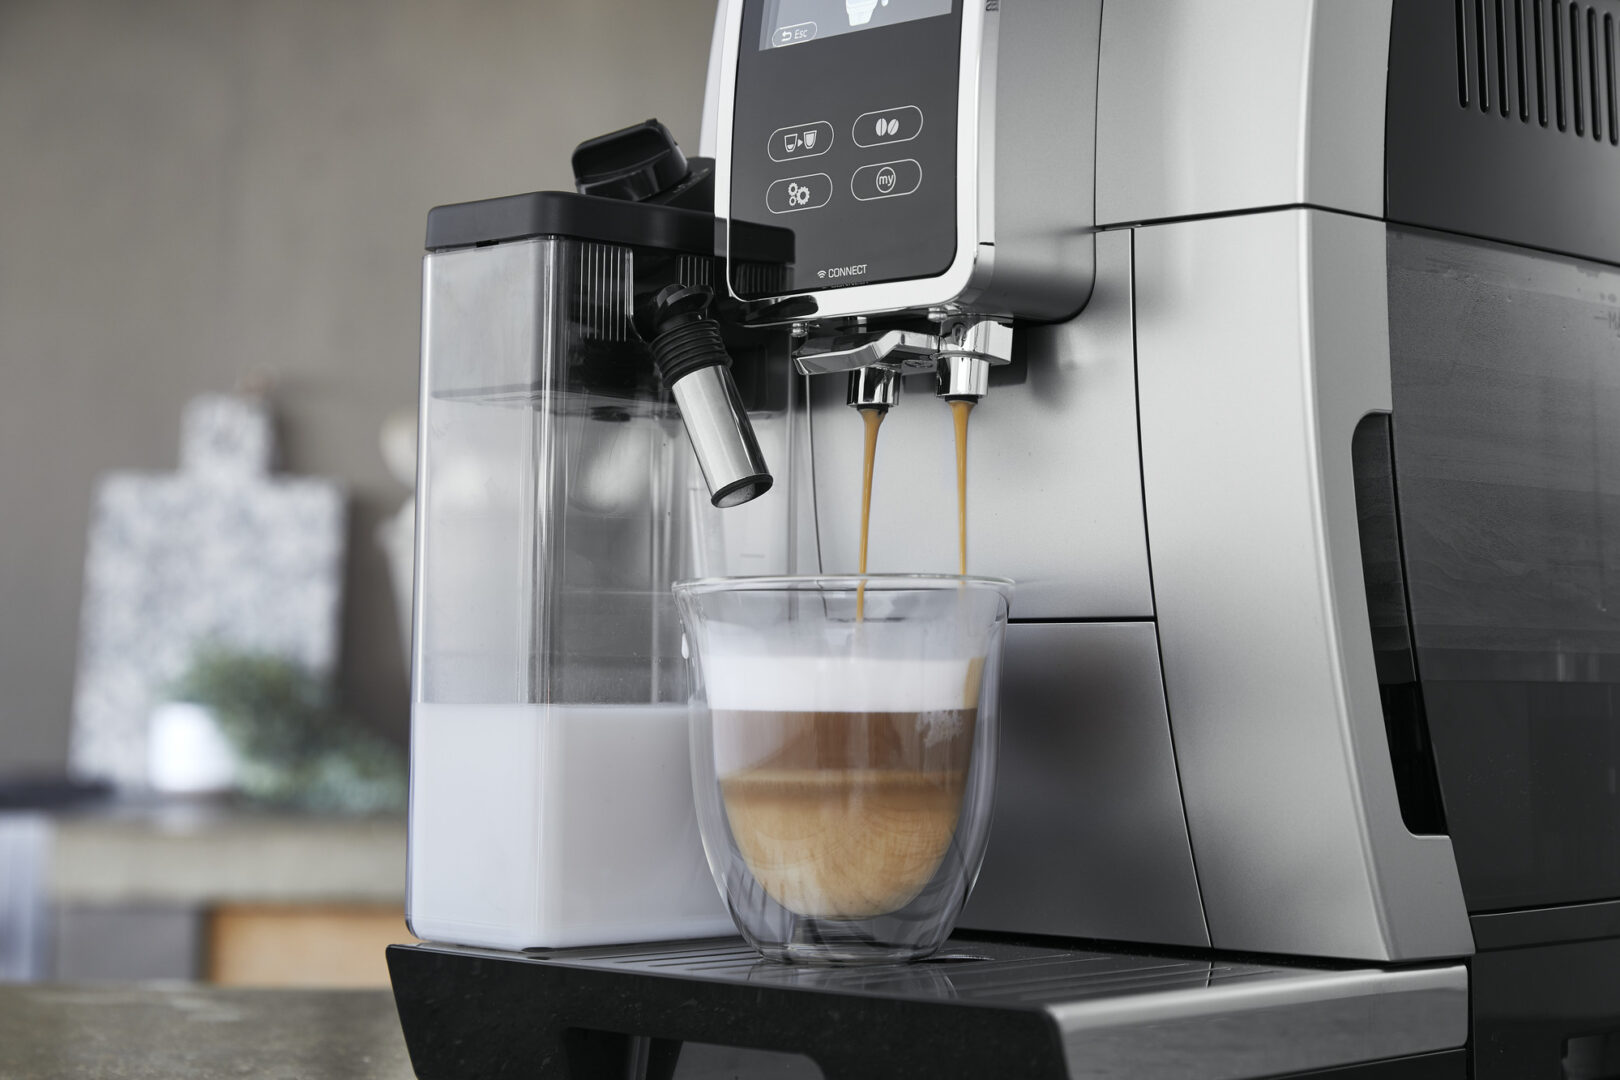 a cup of coffee made from an espresso machine